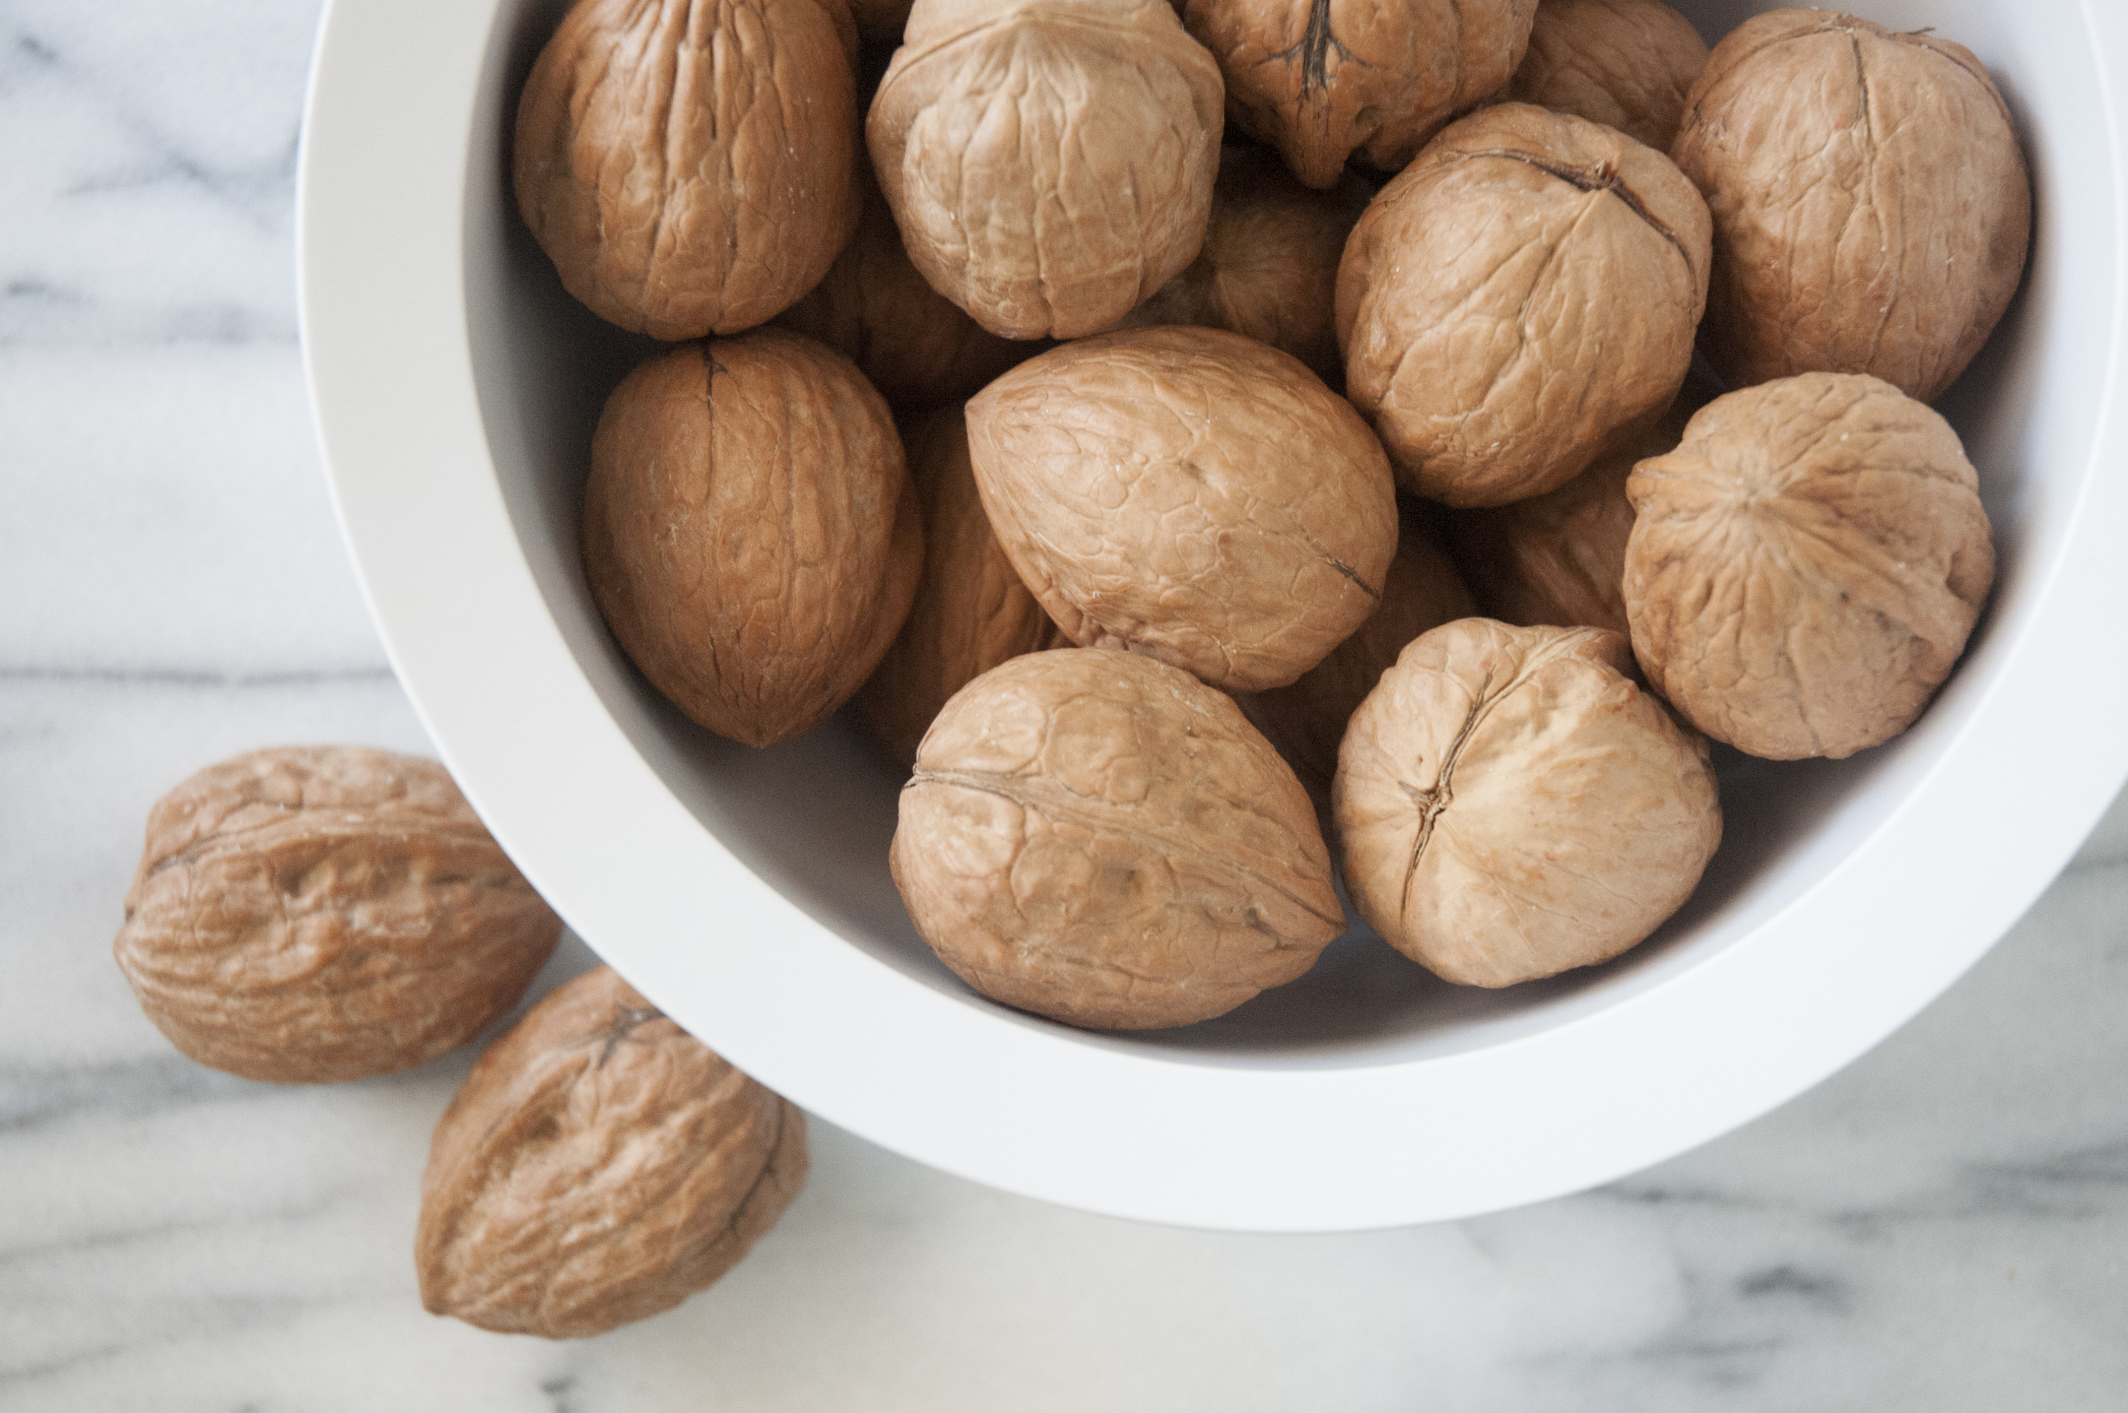 Are Tamari Almonds Good for Cholesterol?